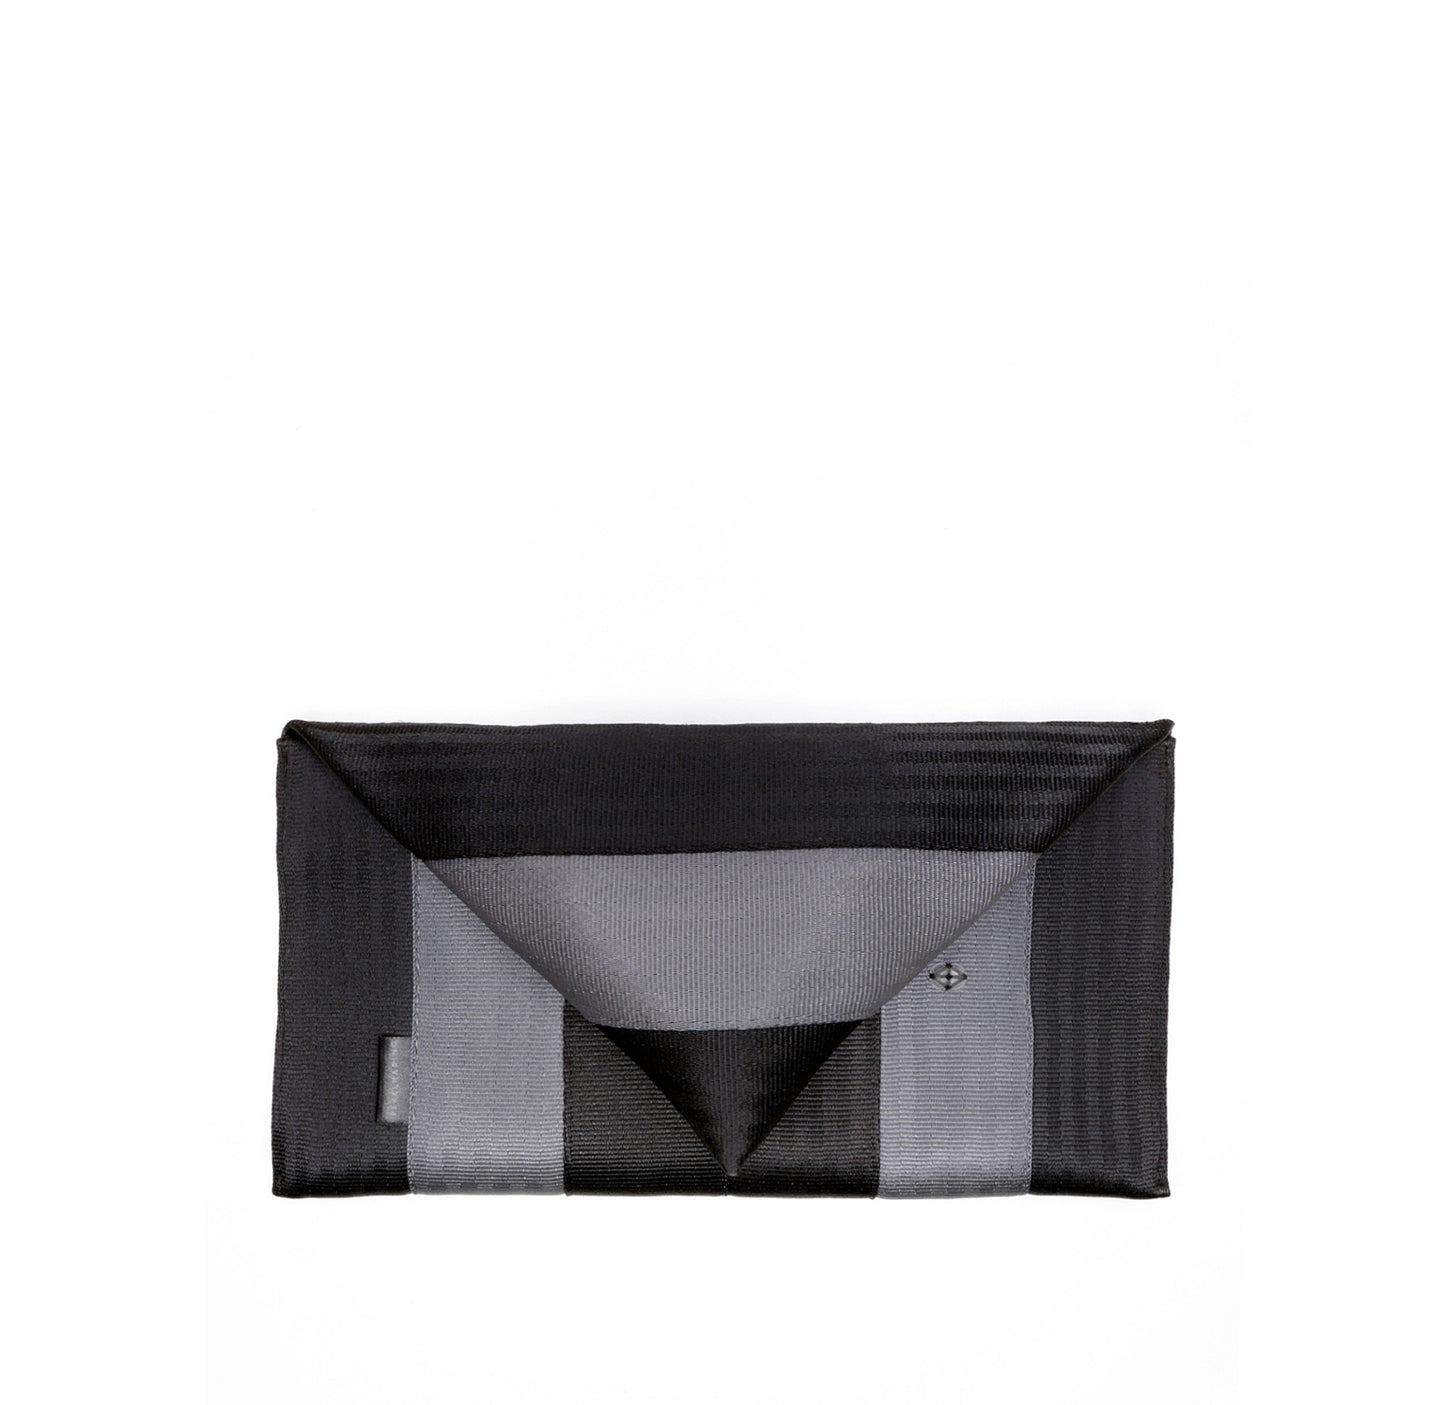 Clutch Black Grey front